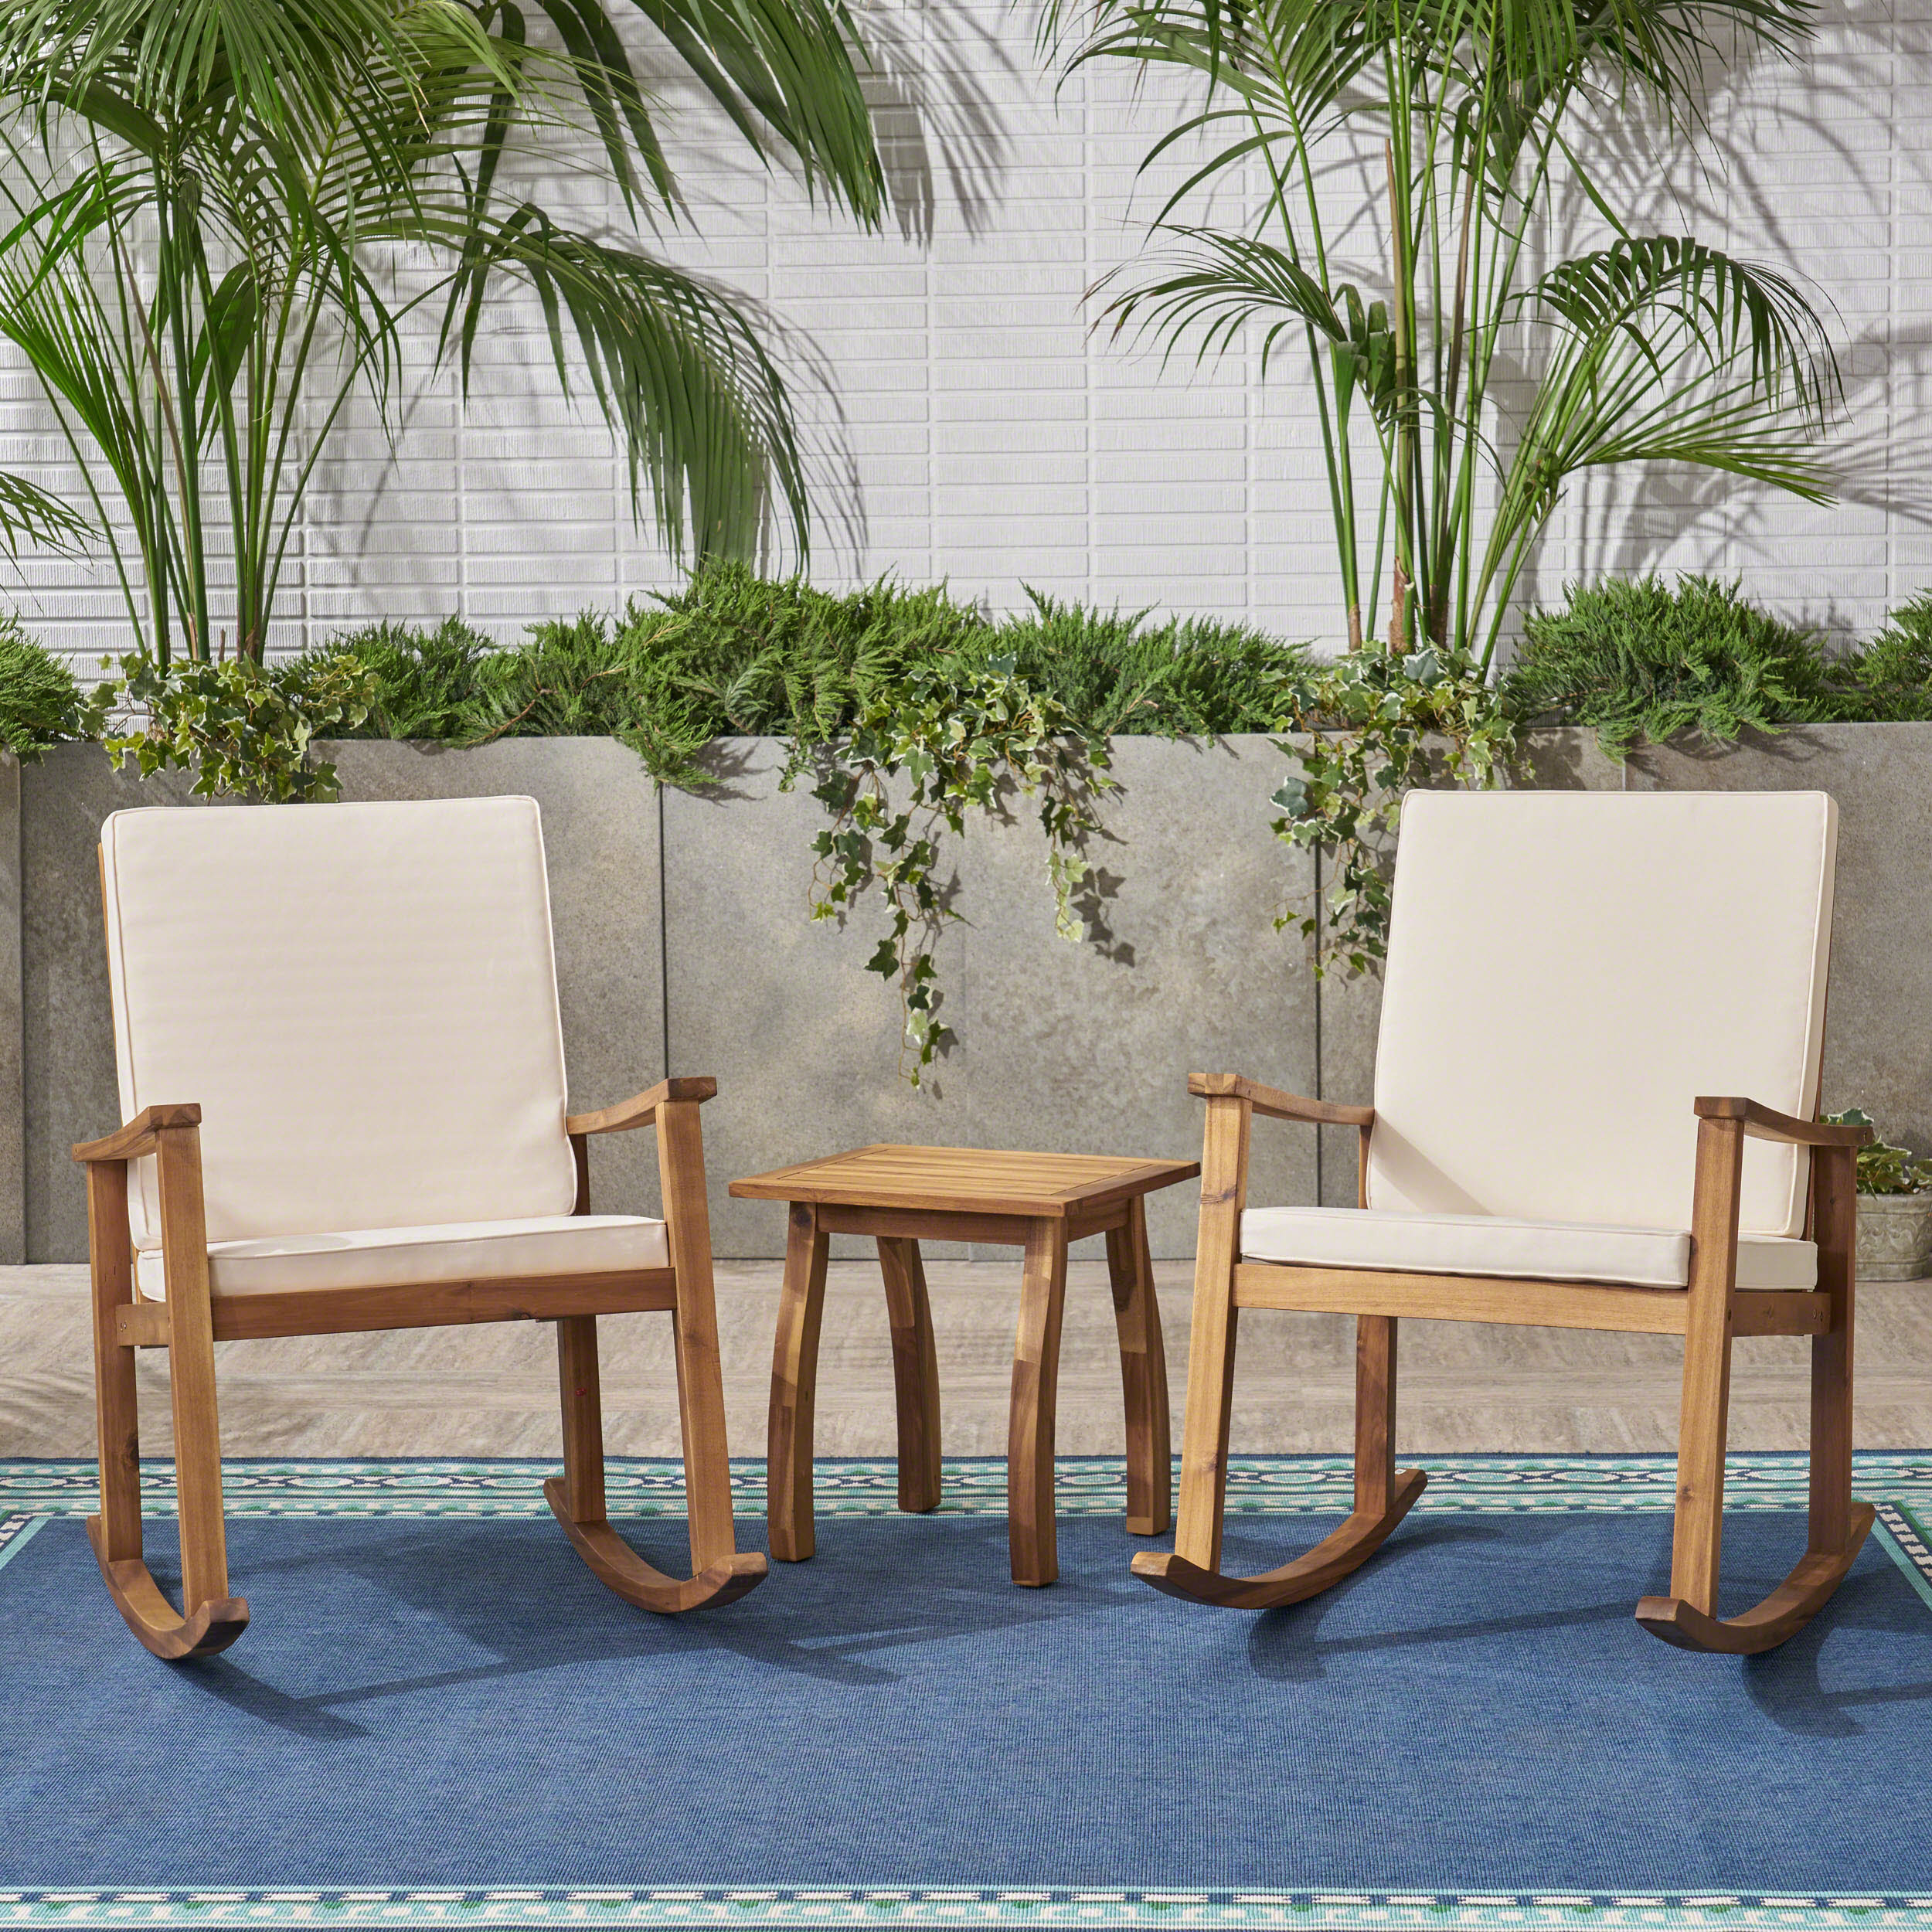 Laney Outdoor 3 Piece Acacia Wood Rocking Conversation Set with Cushions, Teak, Cream